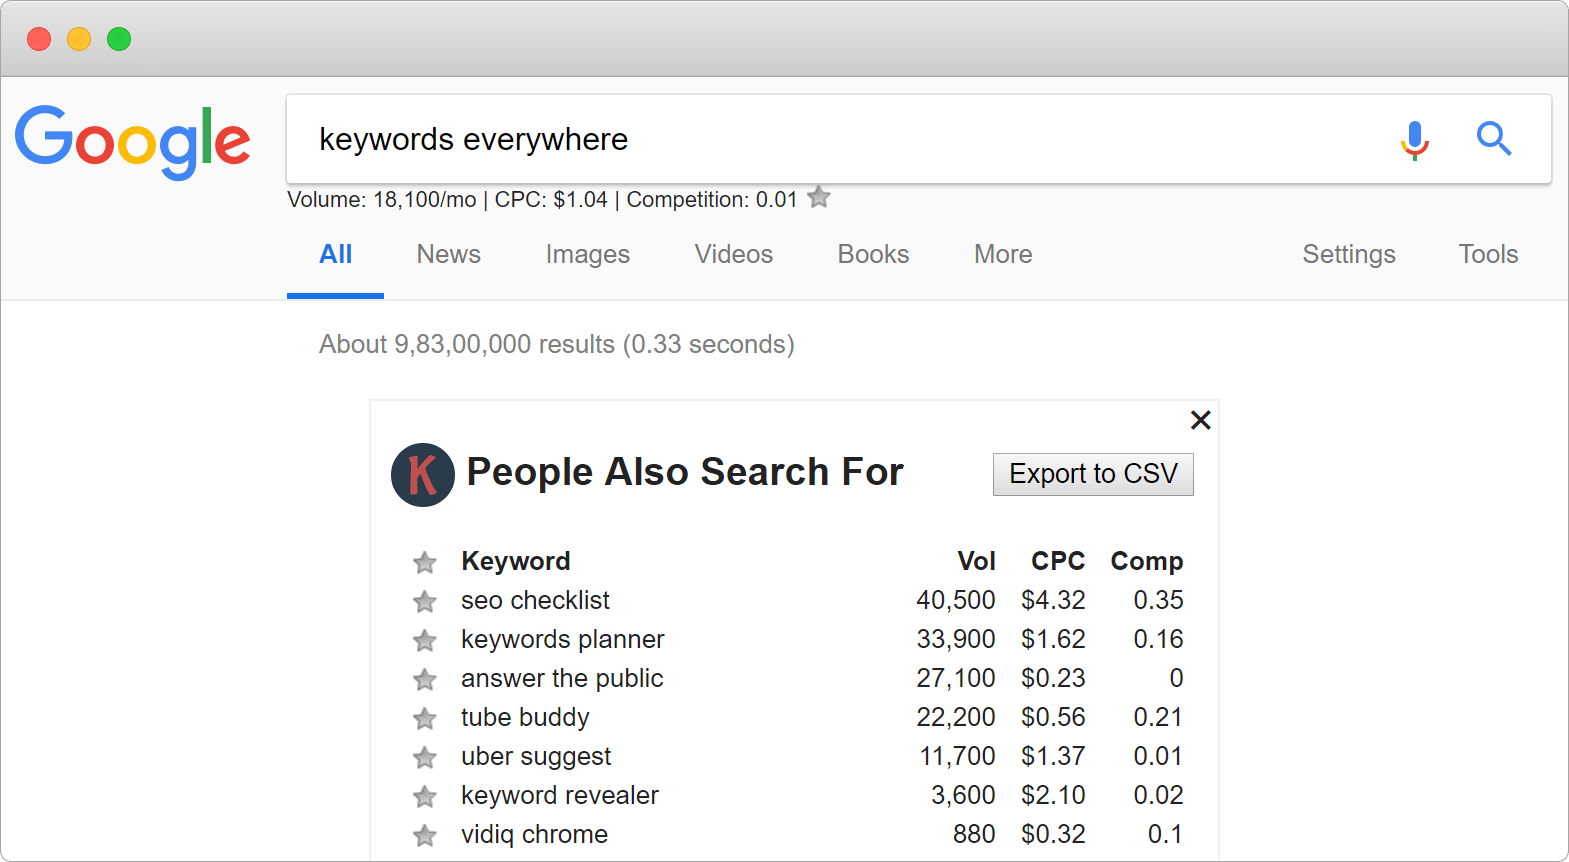 Keywords Everywhere People Also Search For